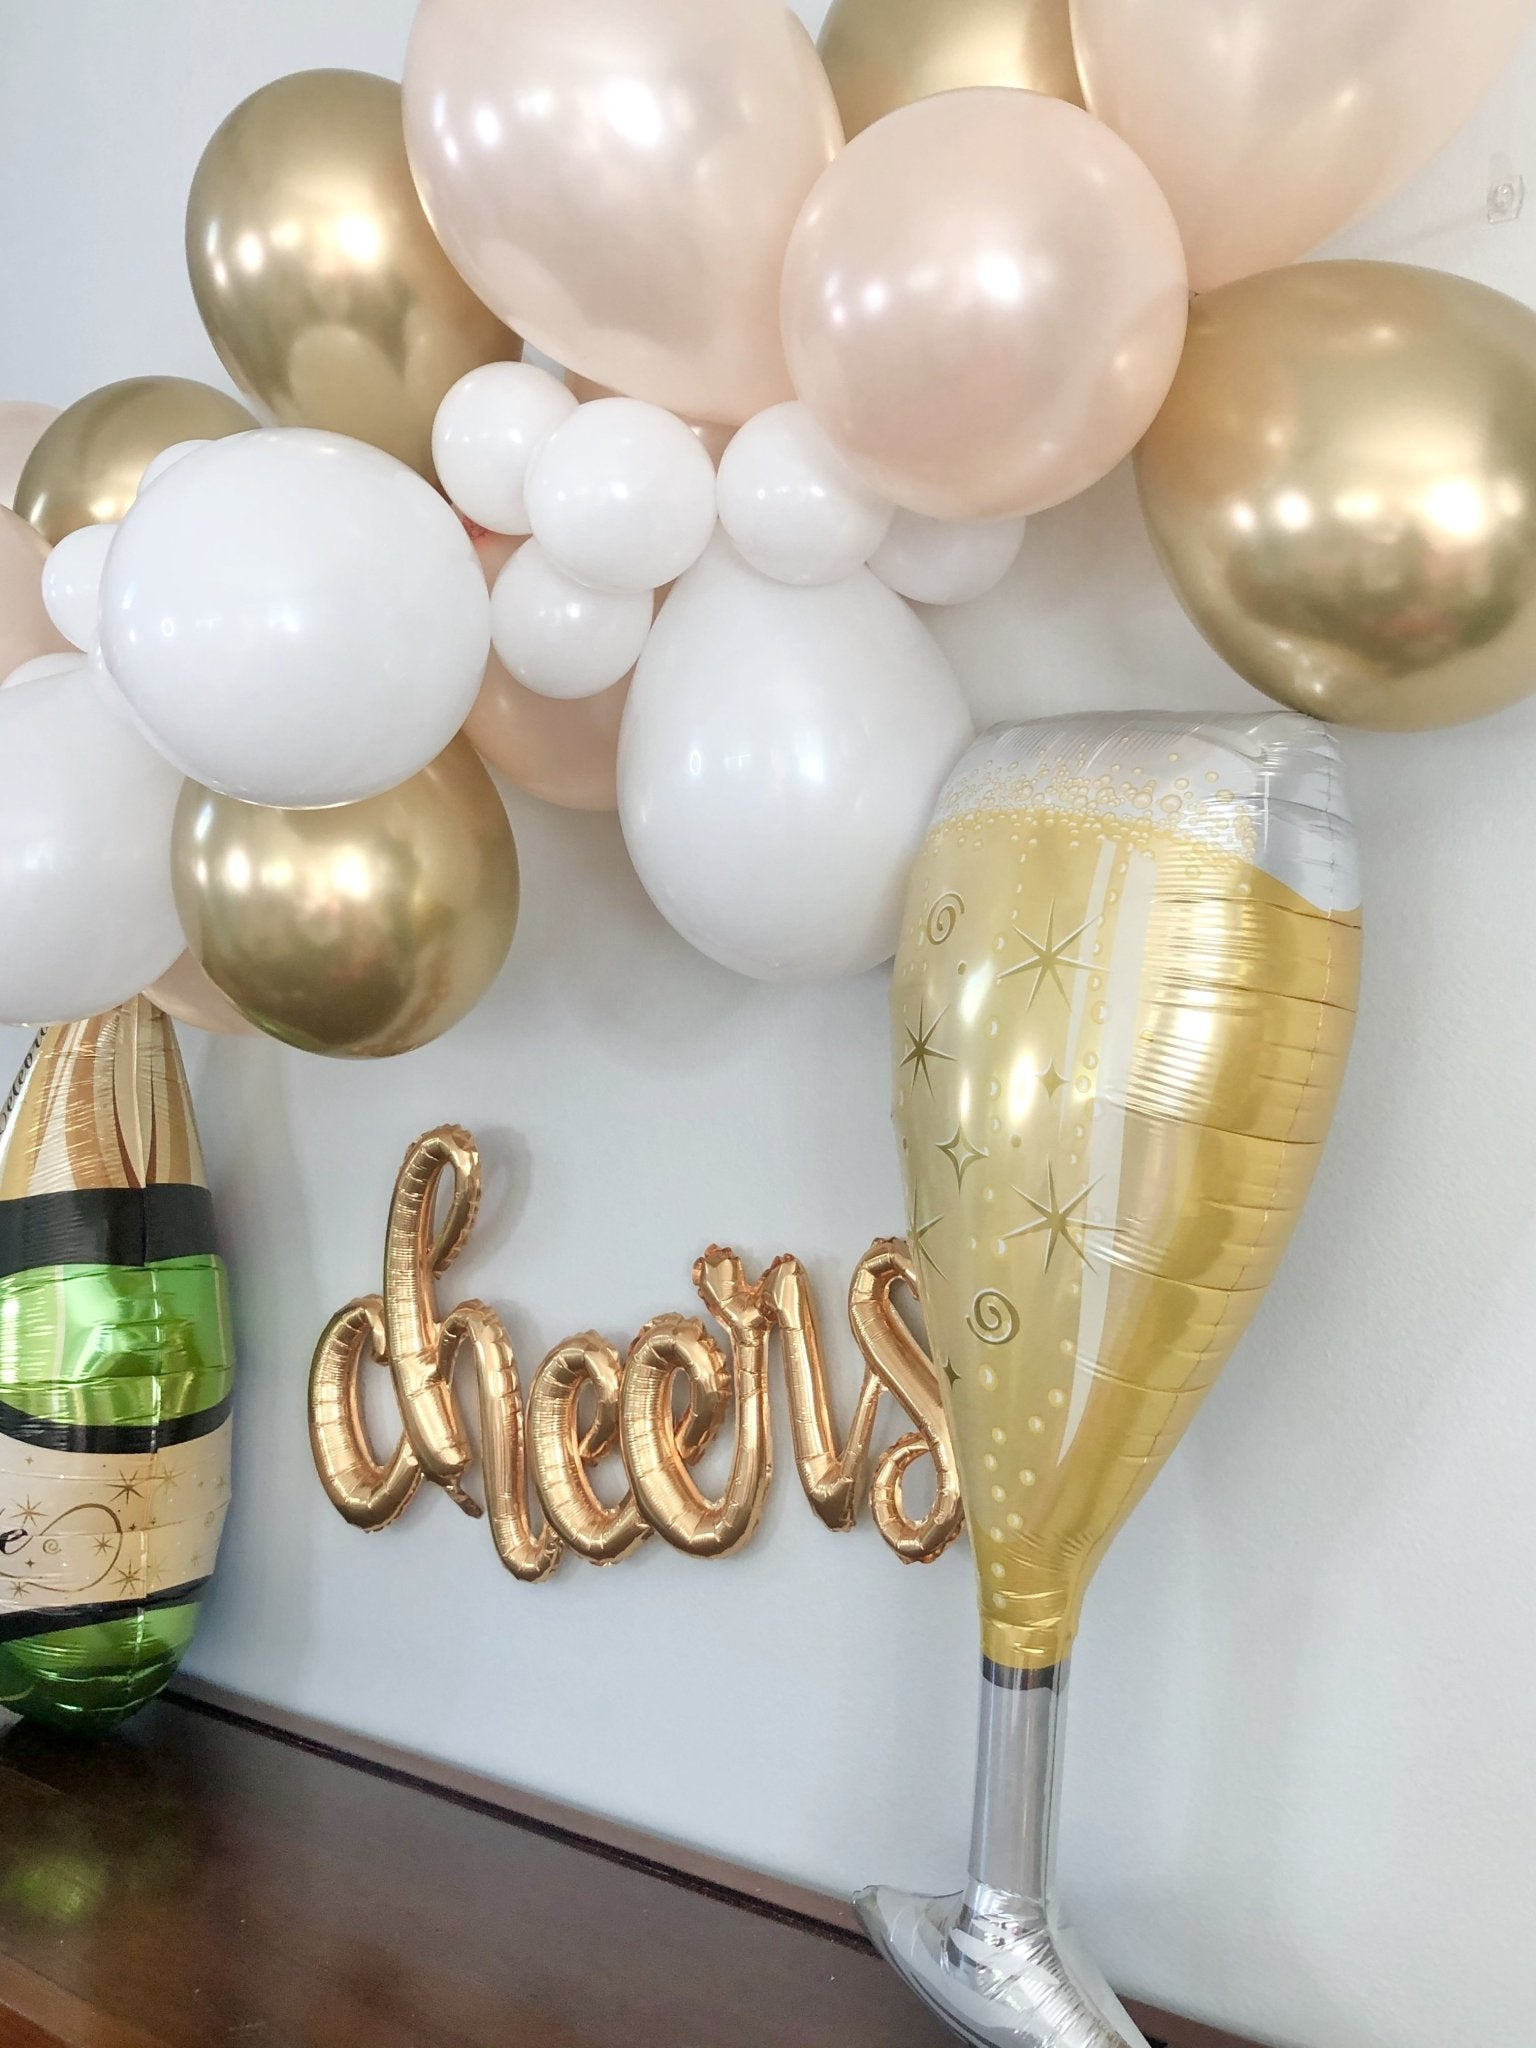 Champagne Glass Balloon Engagement Party Bridal Shower Balloons Pop Fizz Clink New Years Eve Decor Champagne Balloon Bachelorette Birthday